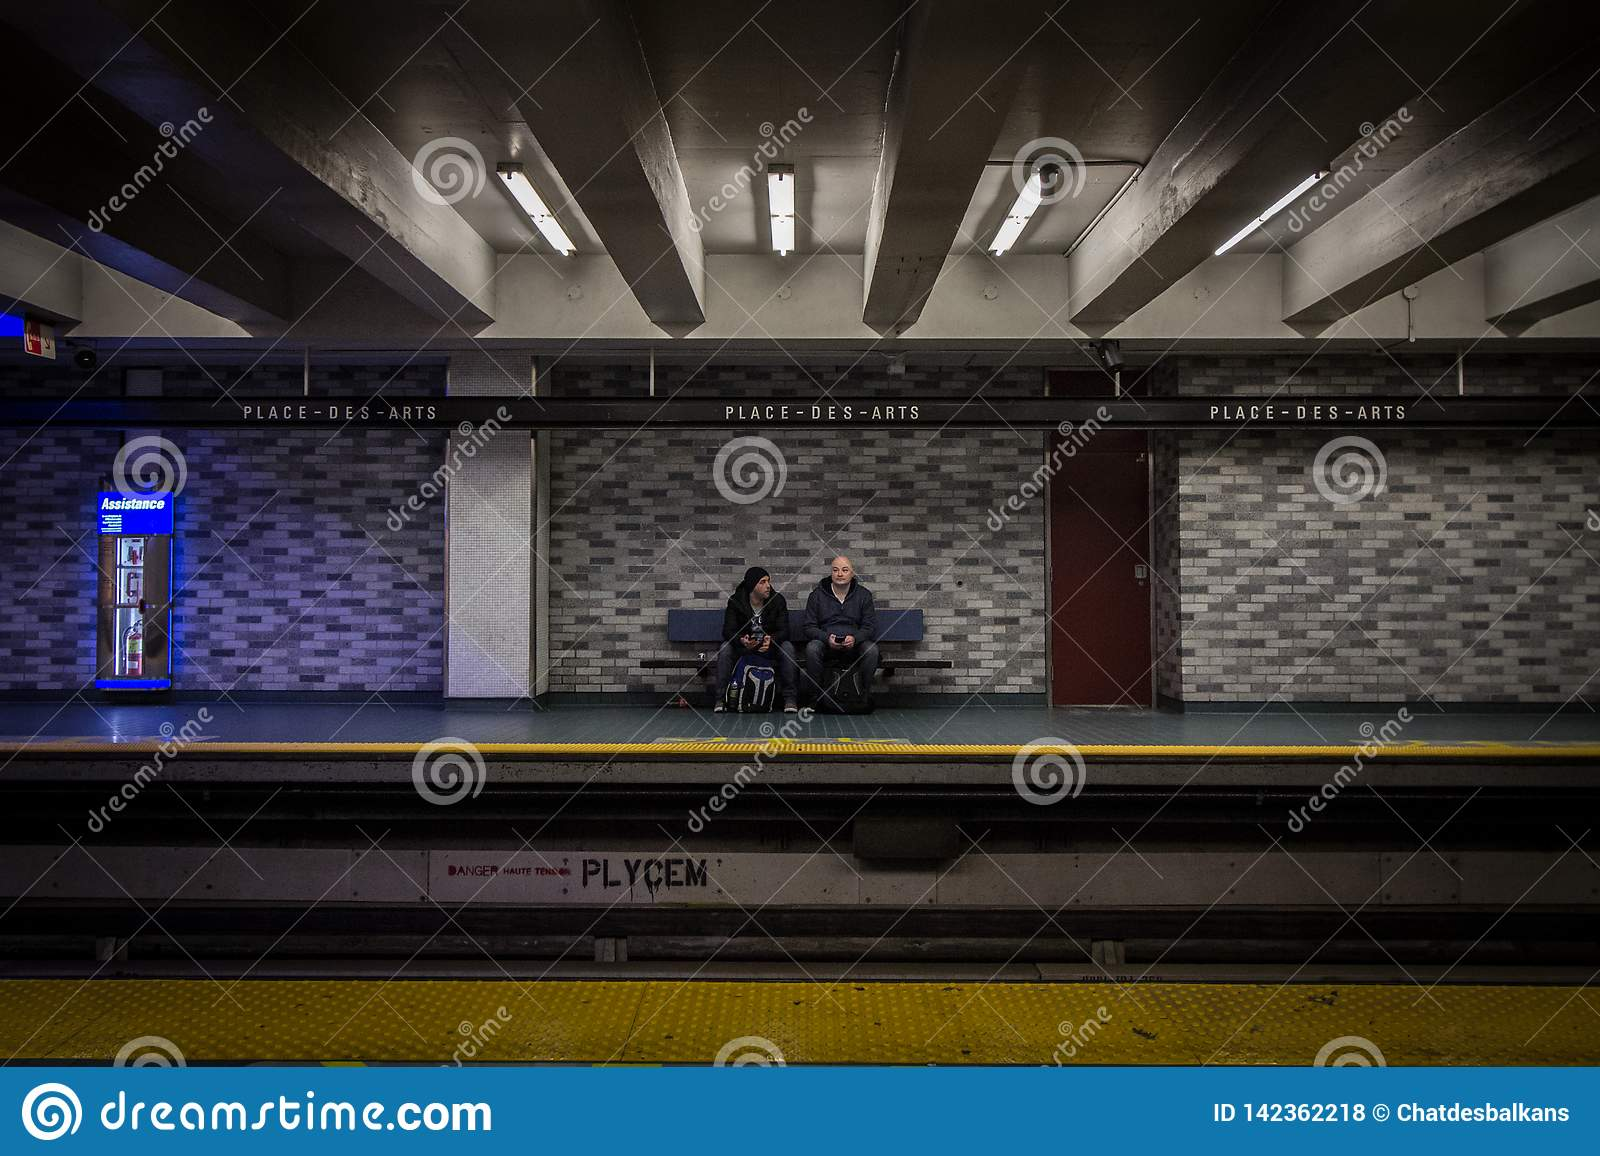 People waiting for a subway in place des Arts station platform, green line, sitting on a bench.